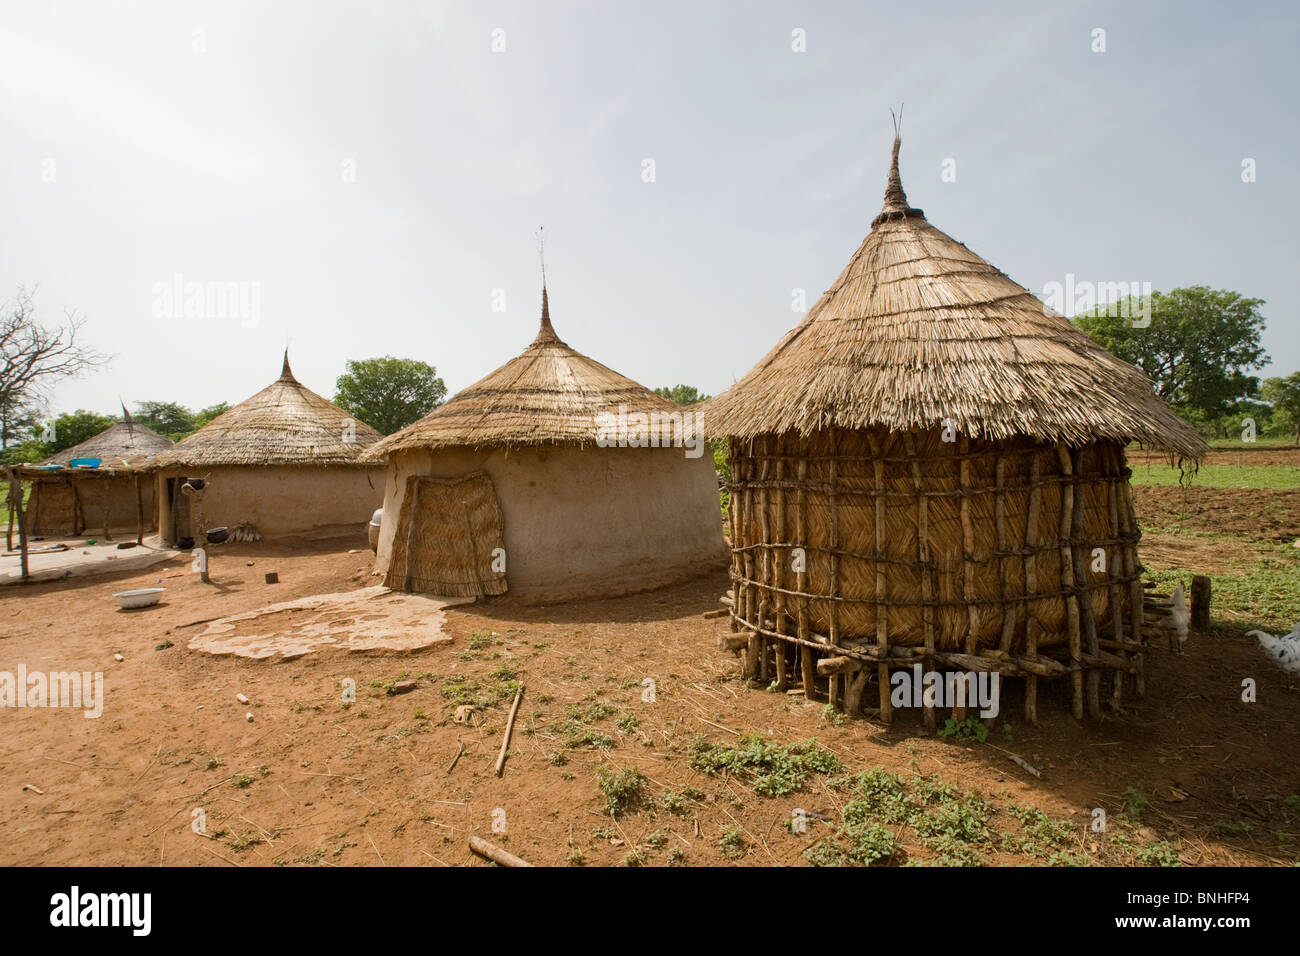 Food store in a Fulani household in the village of Sor No. 1, Gonja triangle, Damango district, Ghana. Stock Photo